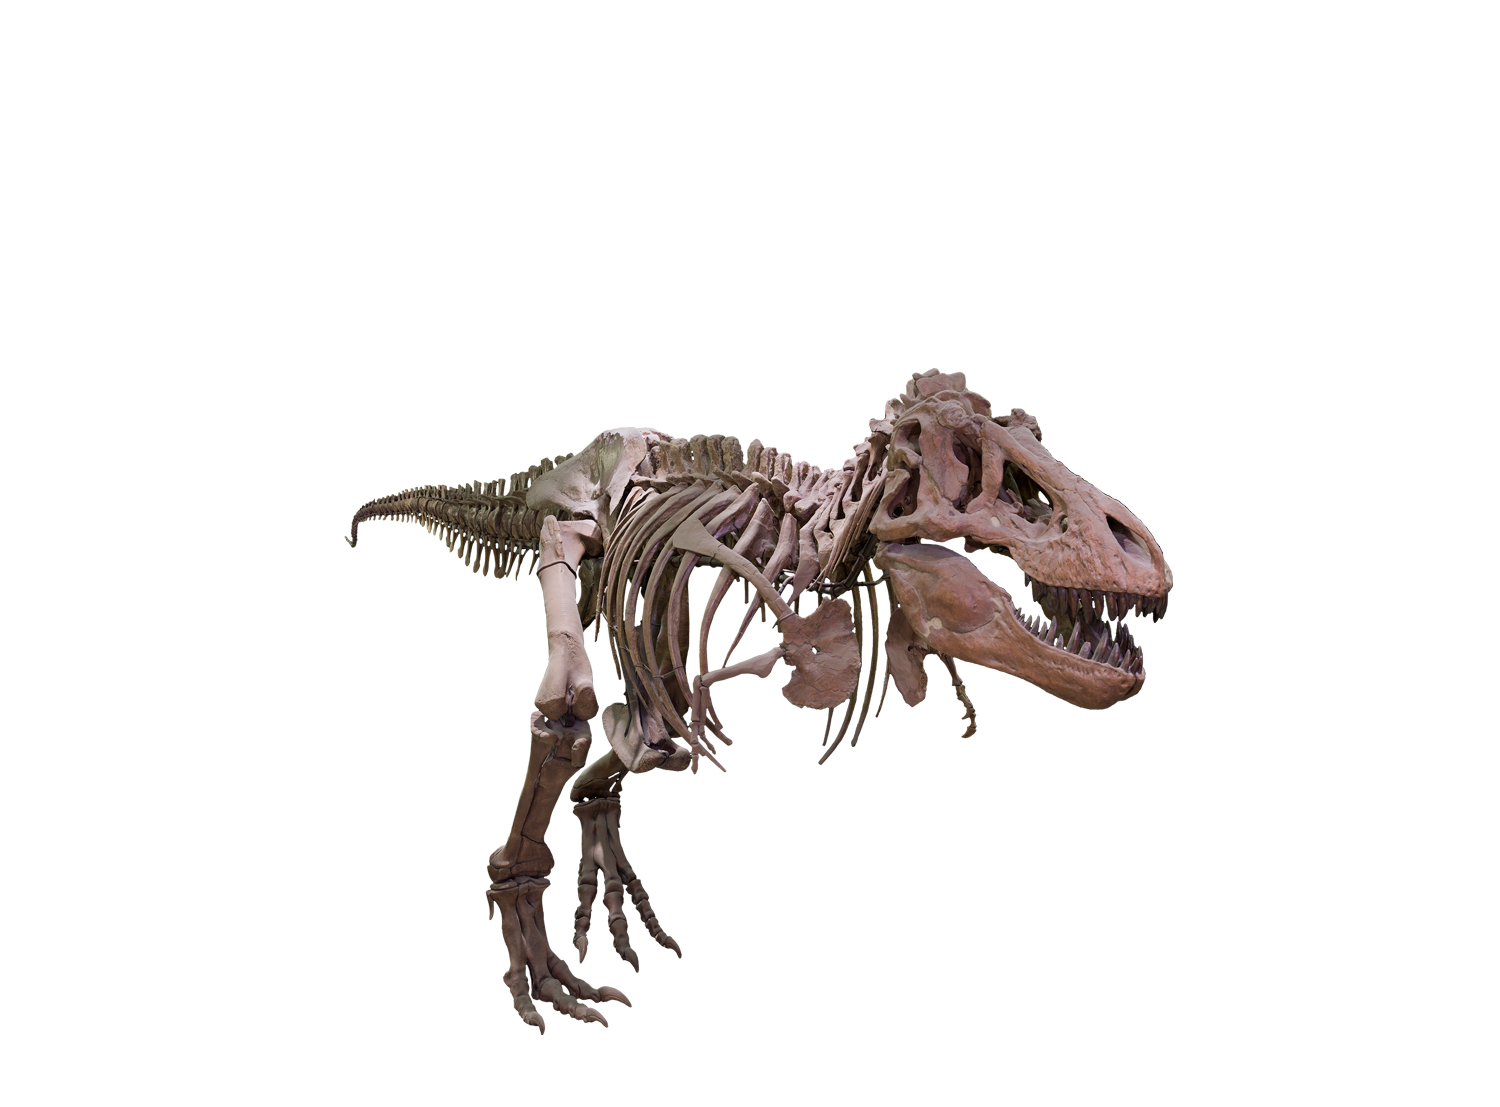 T rex png background. Skeleton clipart trex